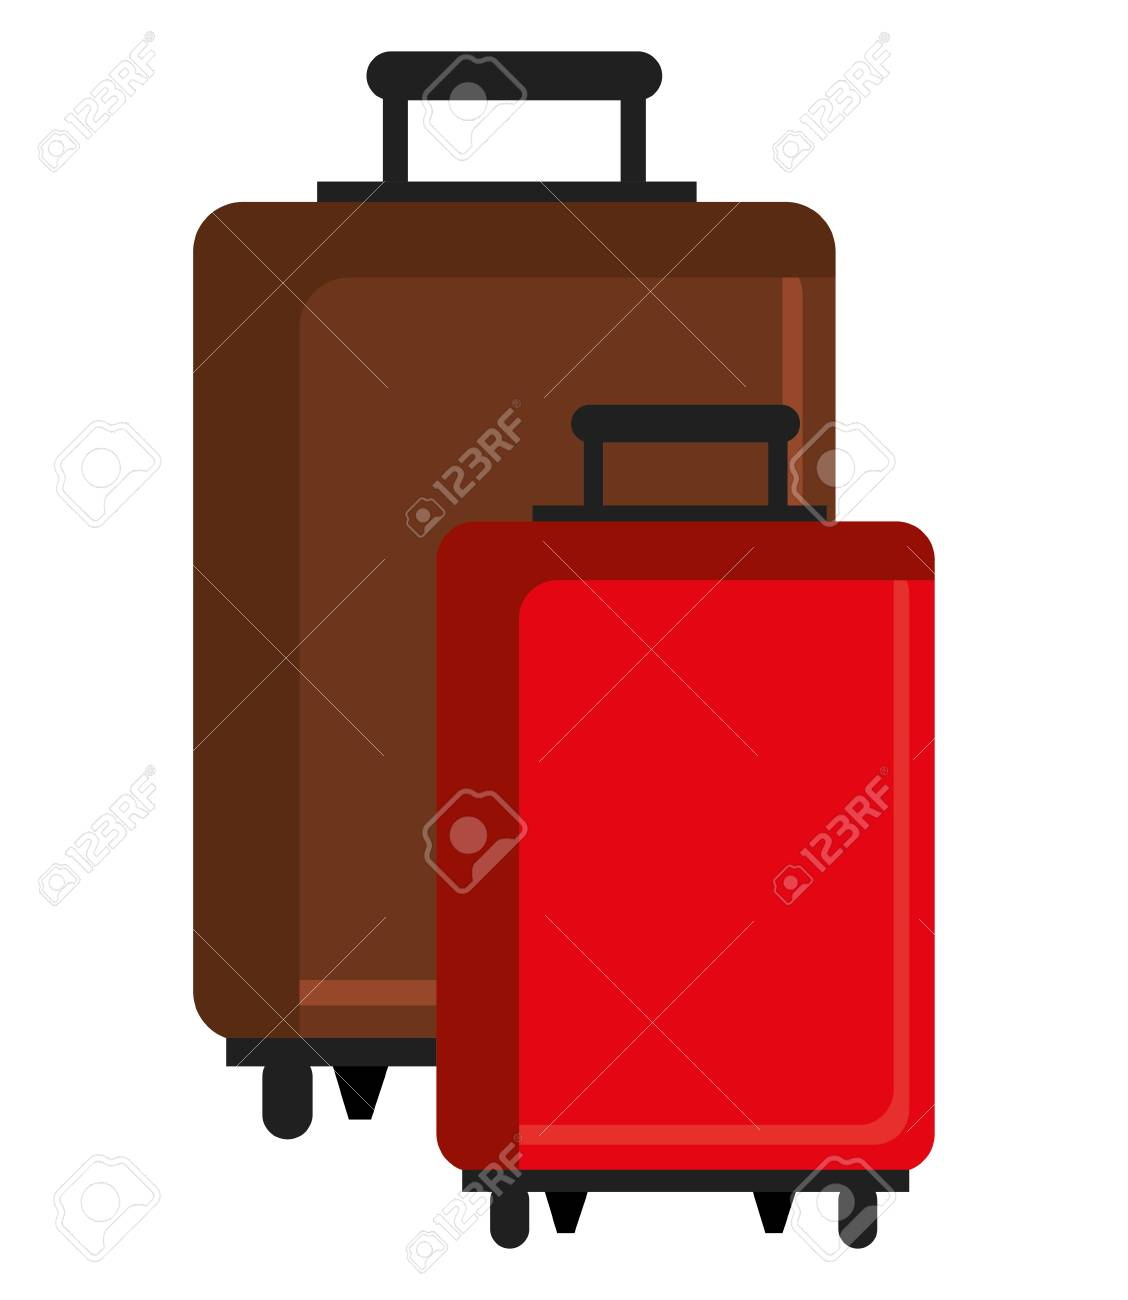 brown and red travle bags front view over isolated background, vector illustration - 59173731